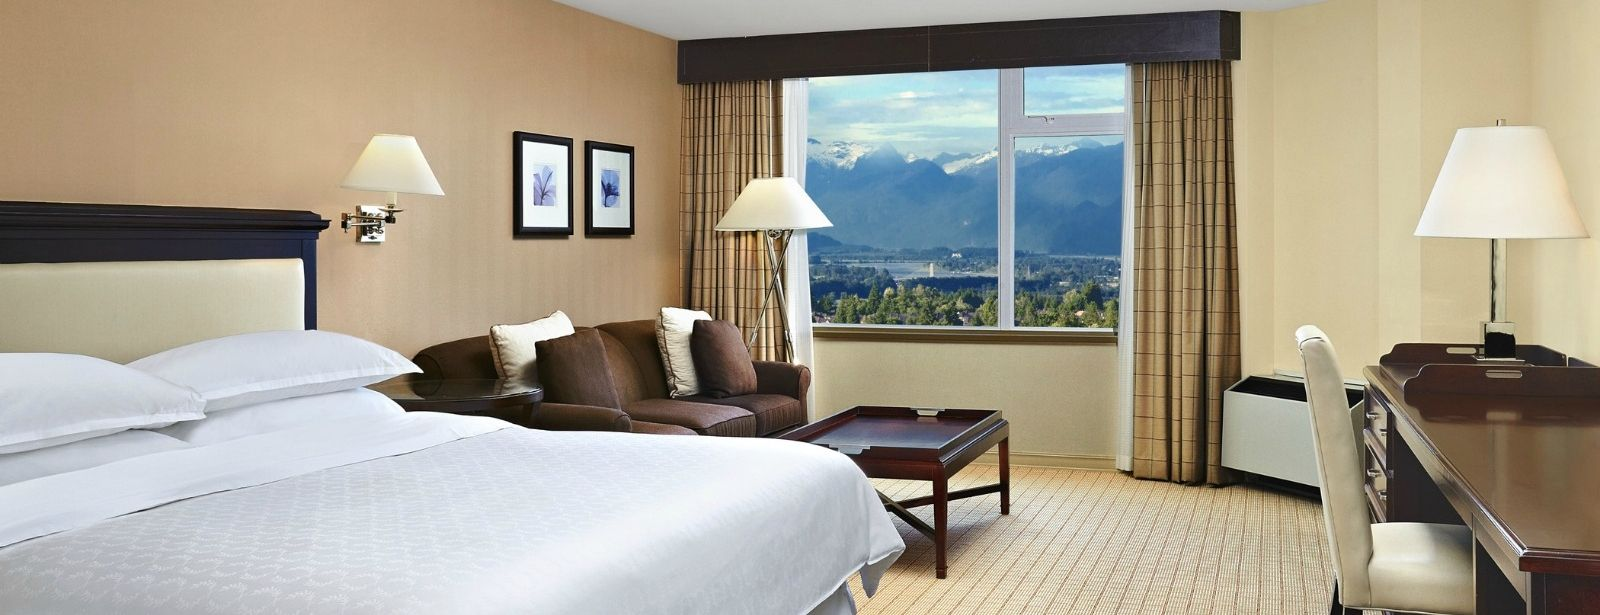 A Corner King Room overlooking the surrounding city and mountains at our Surrey, BC Hotel.